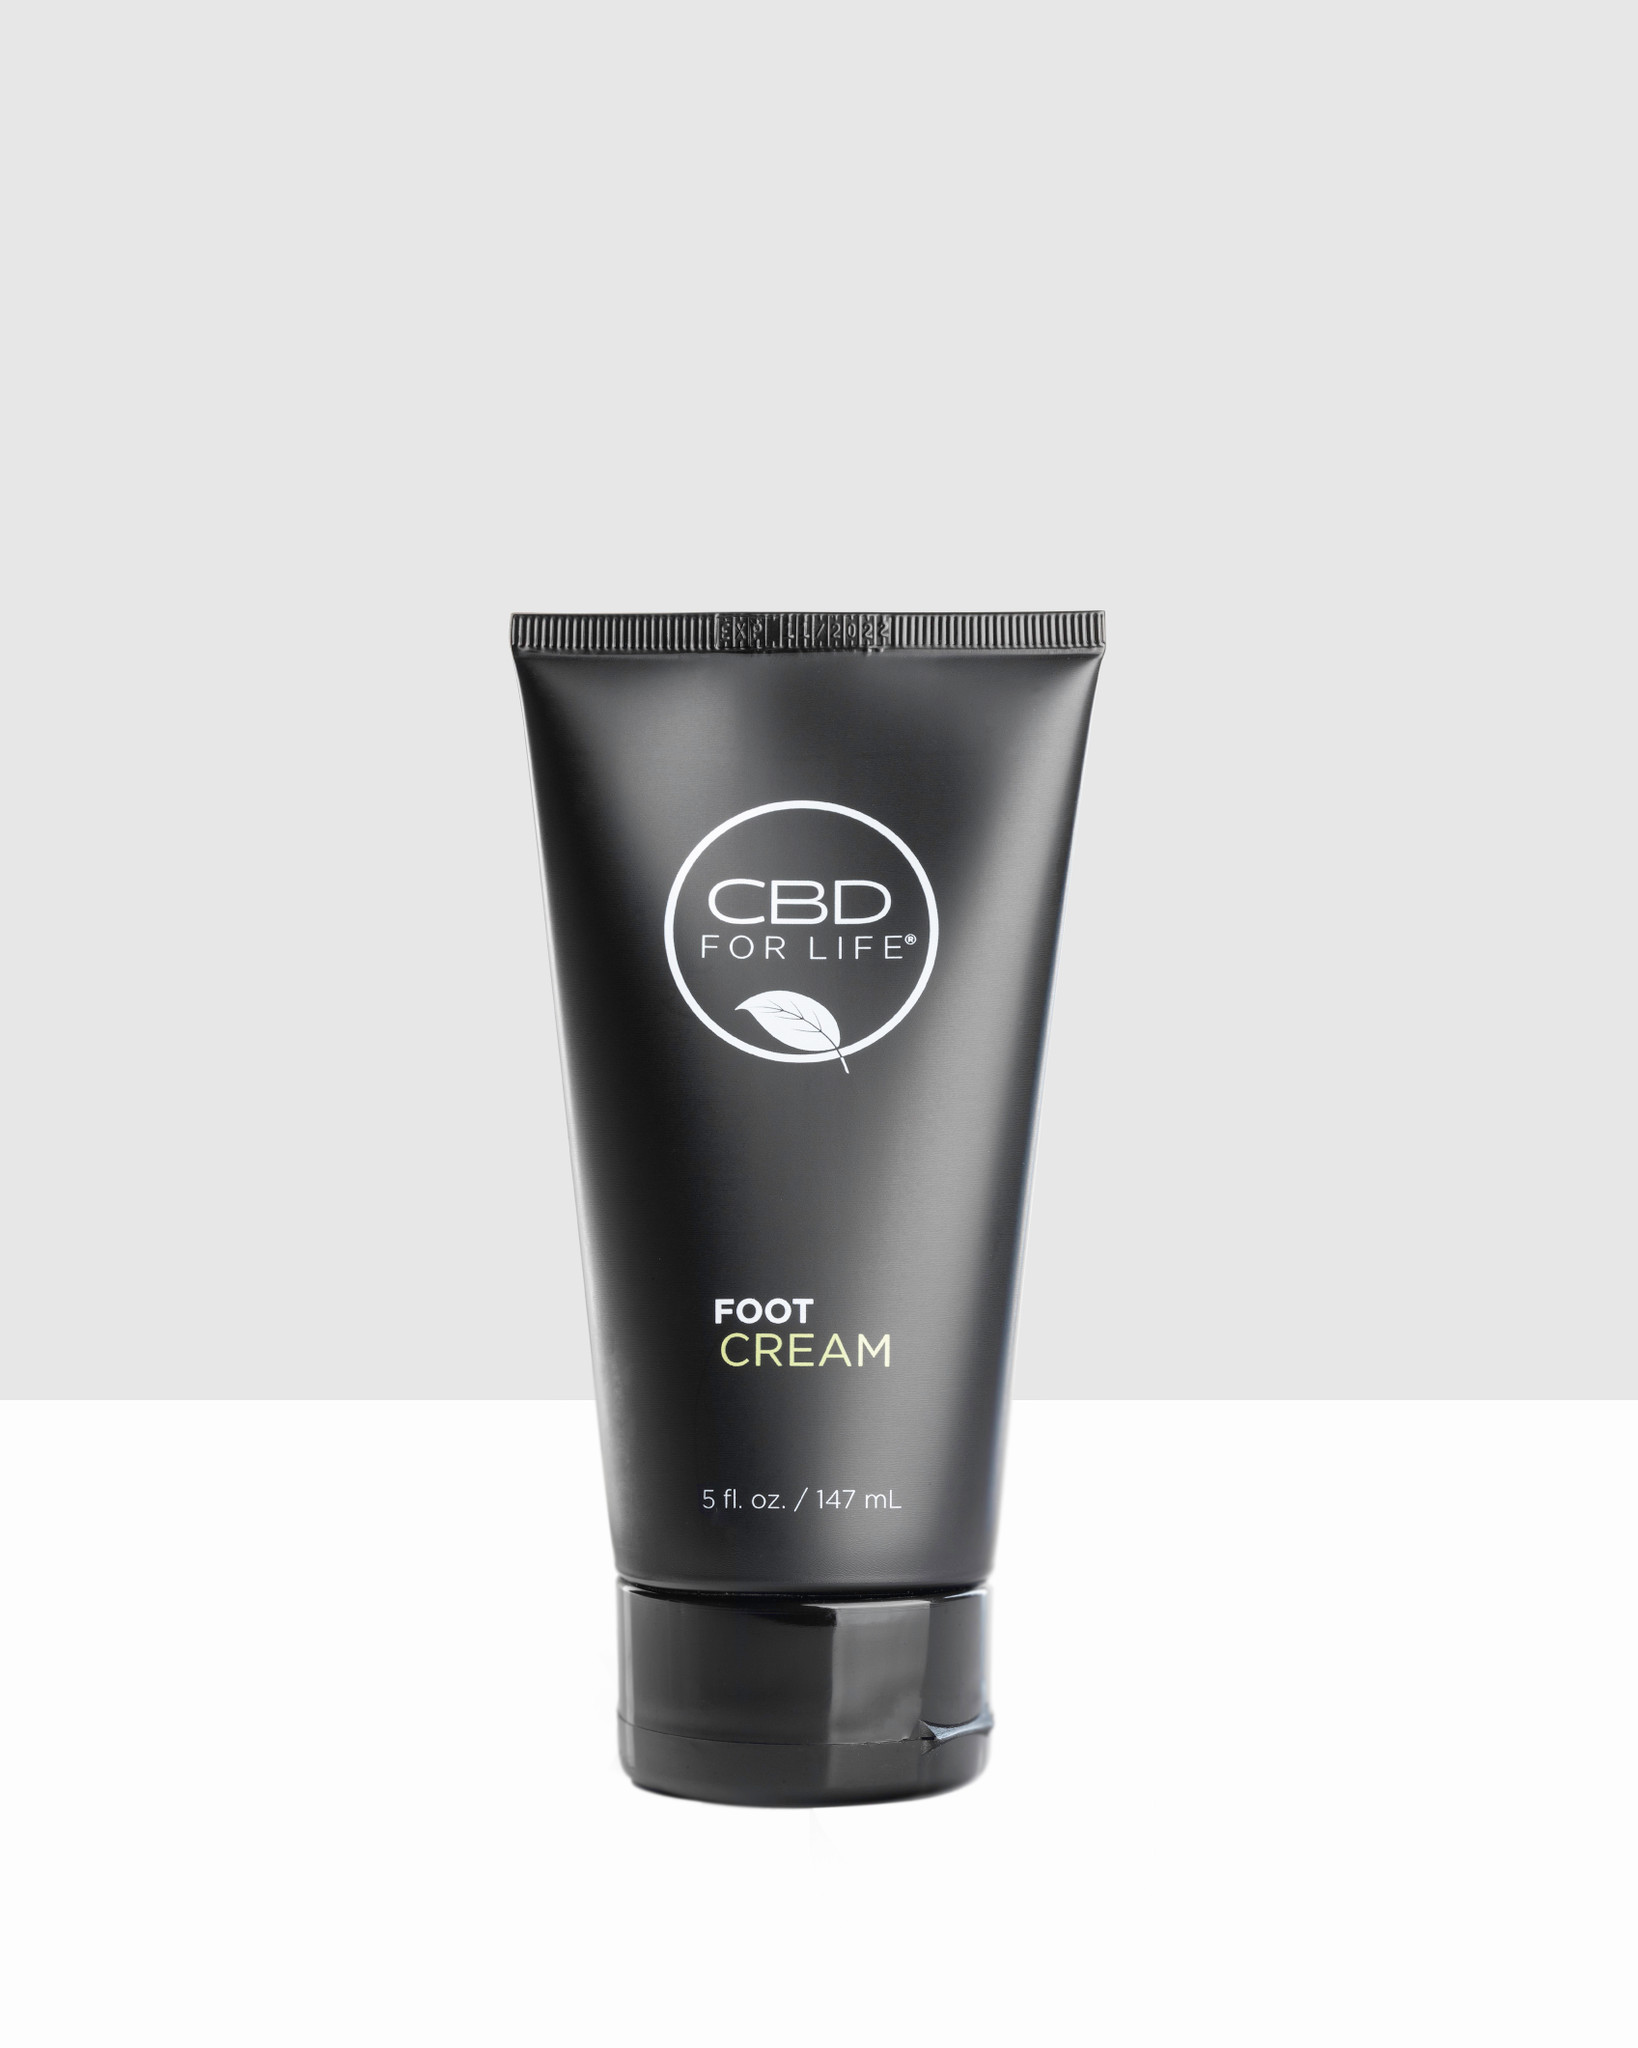 Cooling, comforting and totally refreshing, our CBD Foot Cream blends phytonutrient-rich CBD with nourishing essential oils to help you get back on your feet. Our CBD Foot Cream is ideal for anyone who spends a lot of time on their toes. Among the ingredients in our CBD Foot Cream are CBD, peppermint oil and arnica montana extract. When you apply our CBD Foot Cream after a long day, you can feel it working. Our CBD Foot Cream is one of our top selling products. Try applying our CBD Foot Cream before bed, then slipping on socks. In the morning, your feet will feel fabulous. CBD is one of the most buzzed about ingredients in wellness and self-care. CBD is transforming wellness and self-care.